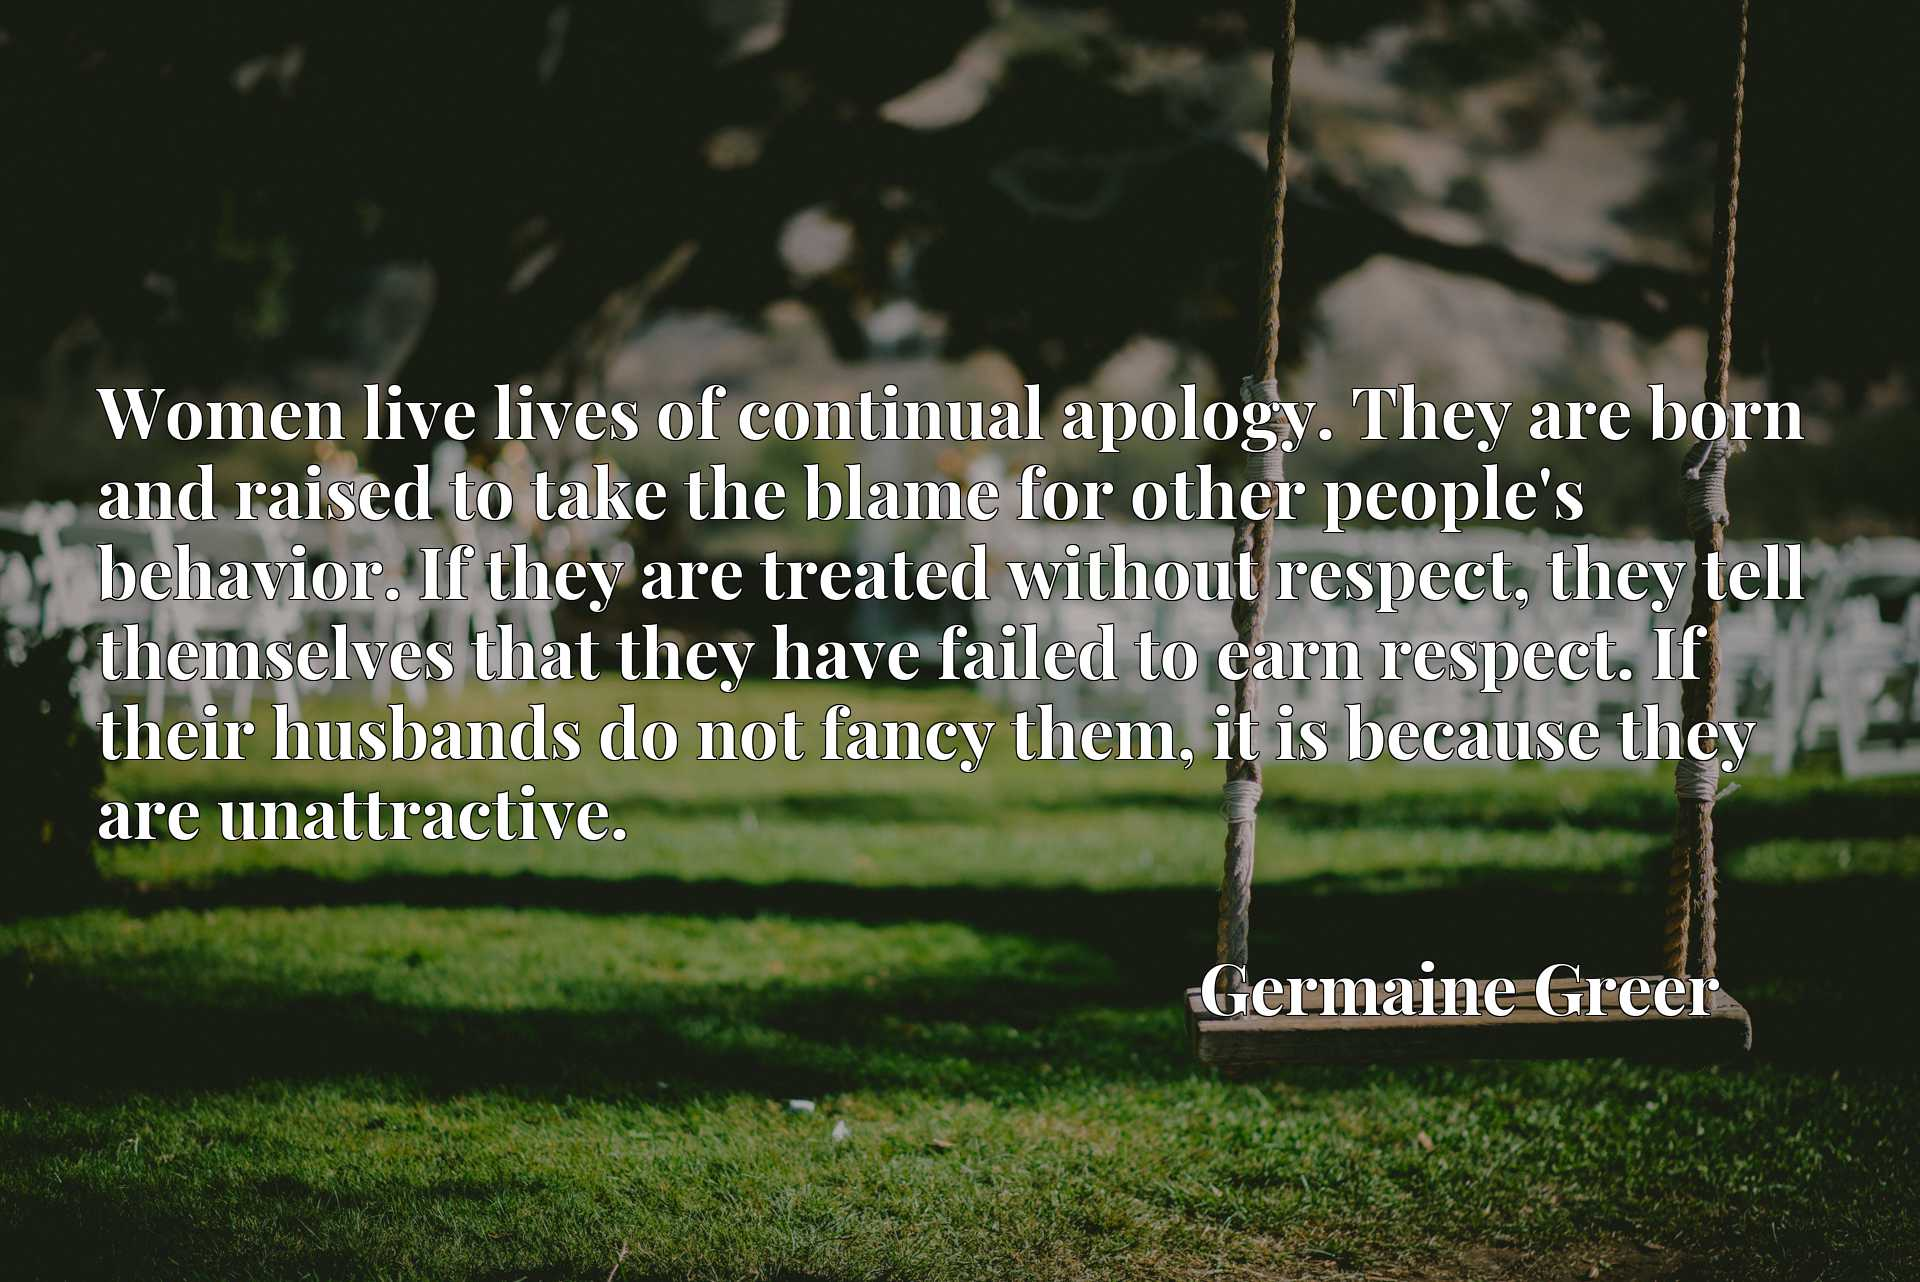 Women live lives of continual apology. They are born and raised to take the blame for other people's behavior. If they are treated without respect, they tell themselves that they have failed to earn respect. If their husbands do not fancy them, it is because they are unattractive.